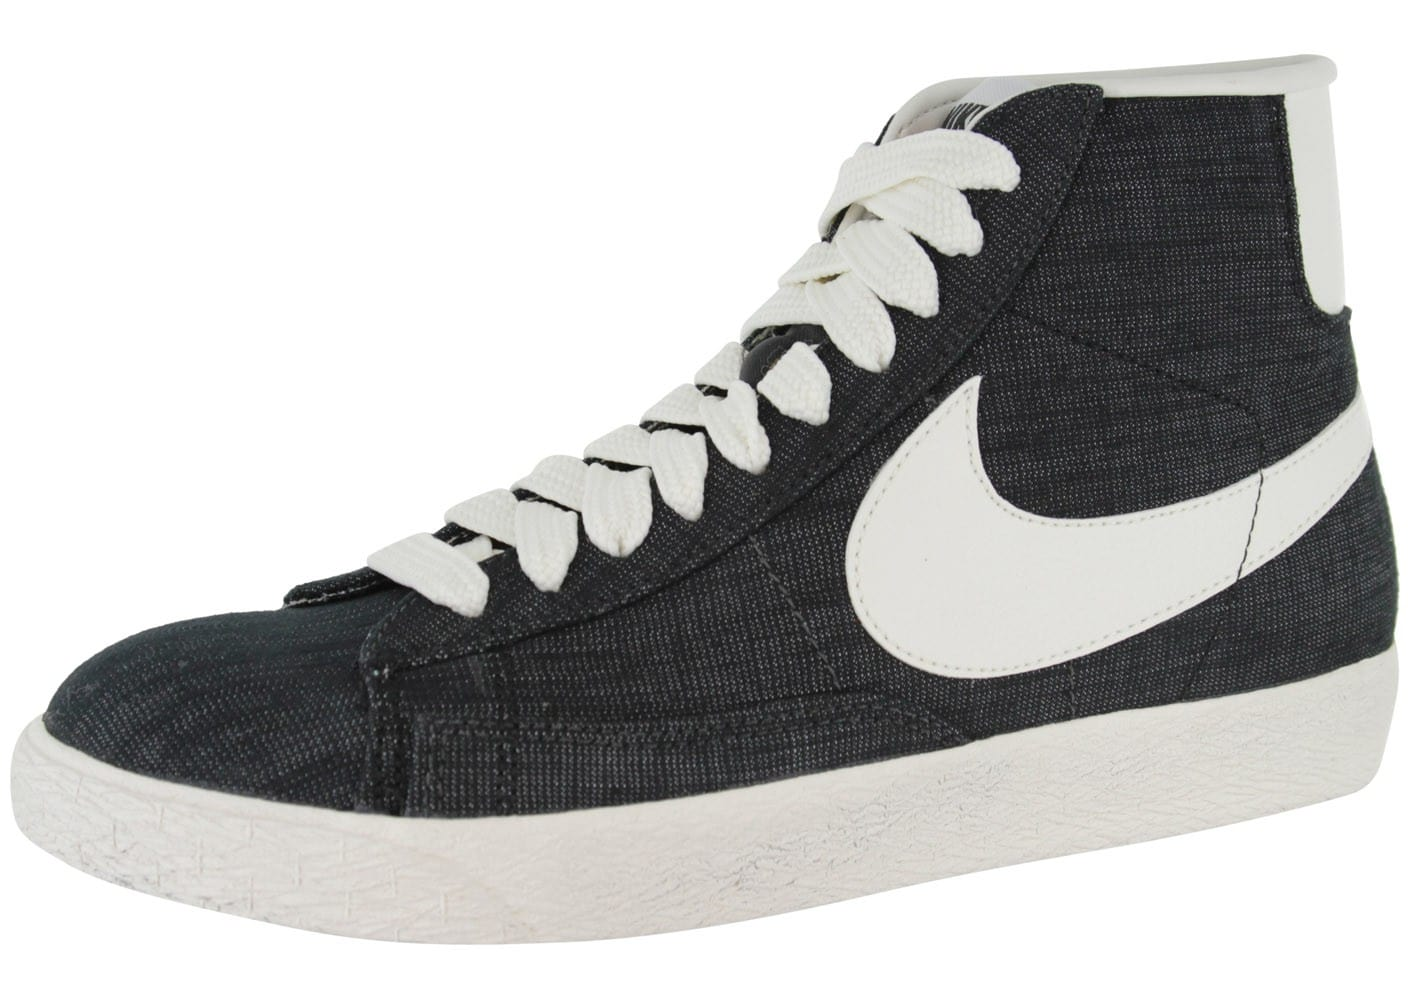 Mid Homme Noire Blazer Baskets Chaussures Chausport Nike Toile 7Hq5nxHY